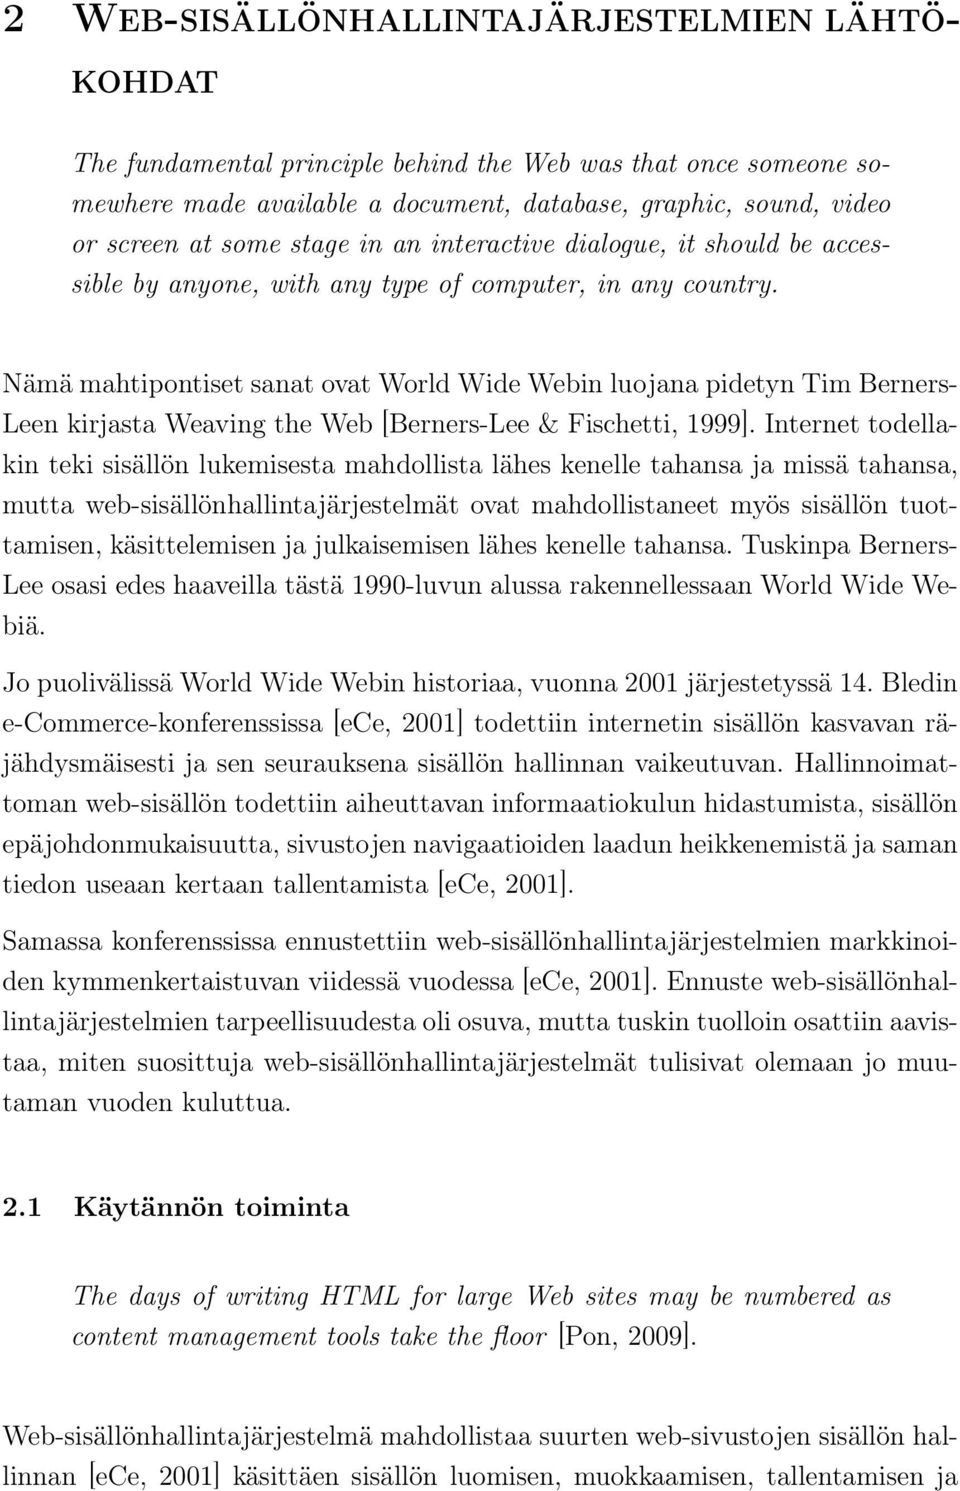 Nämä mahtipontiset sanat ovat World Wide Webin luojana pidetyn Tim Berners- Leen kirjasta Weaving the Web [Berners-Lee & Fischetti, 1999].